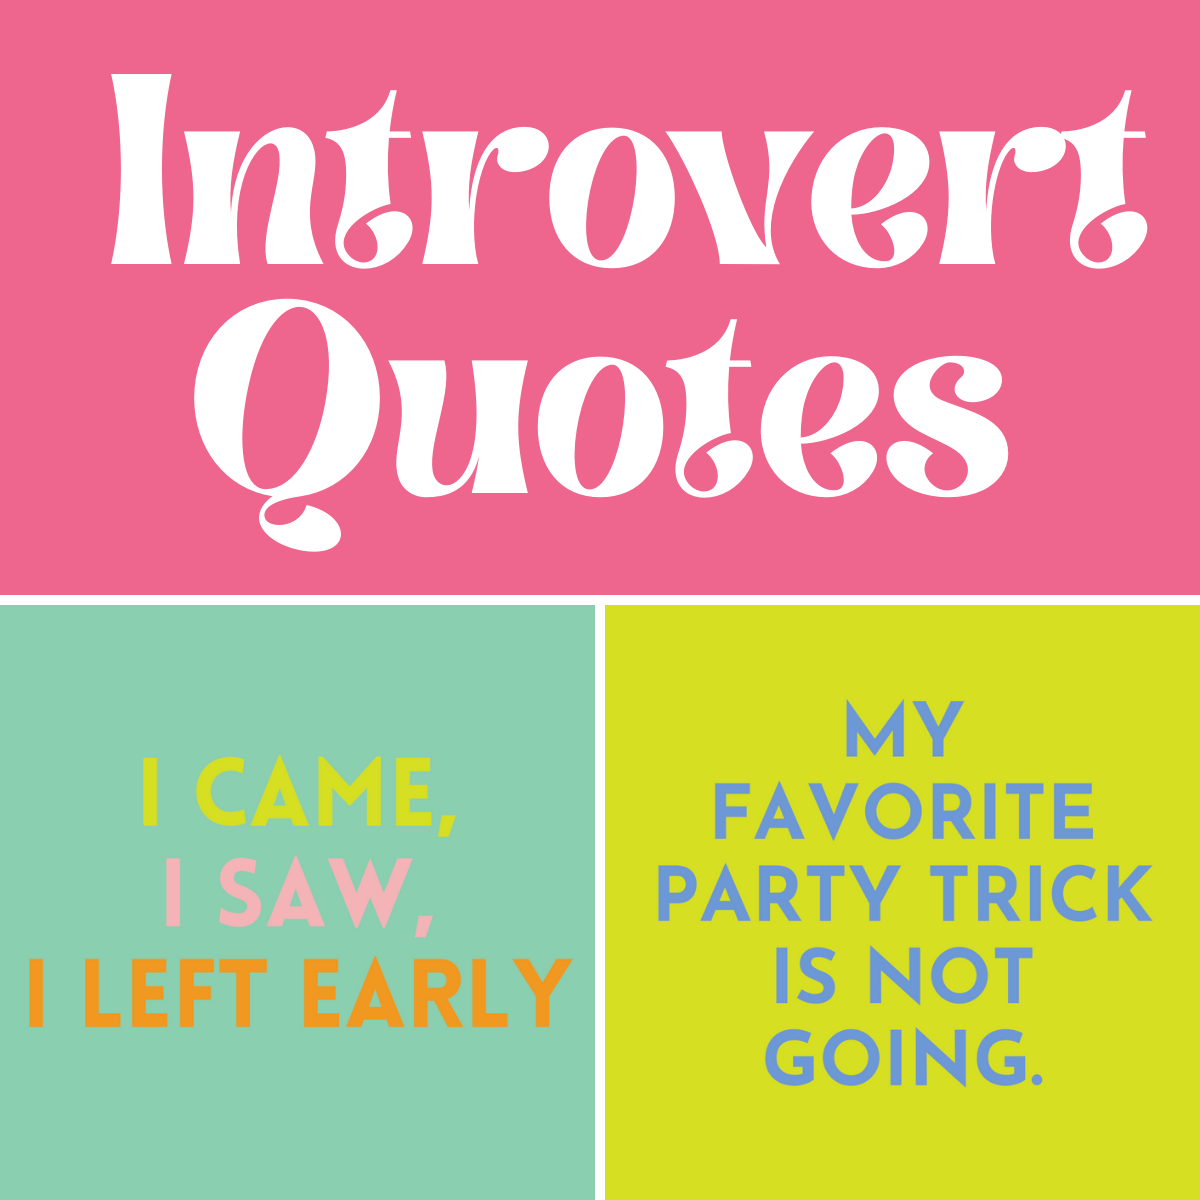 Funny Introvert Quotes To Share